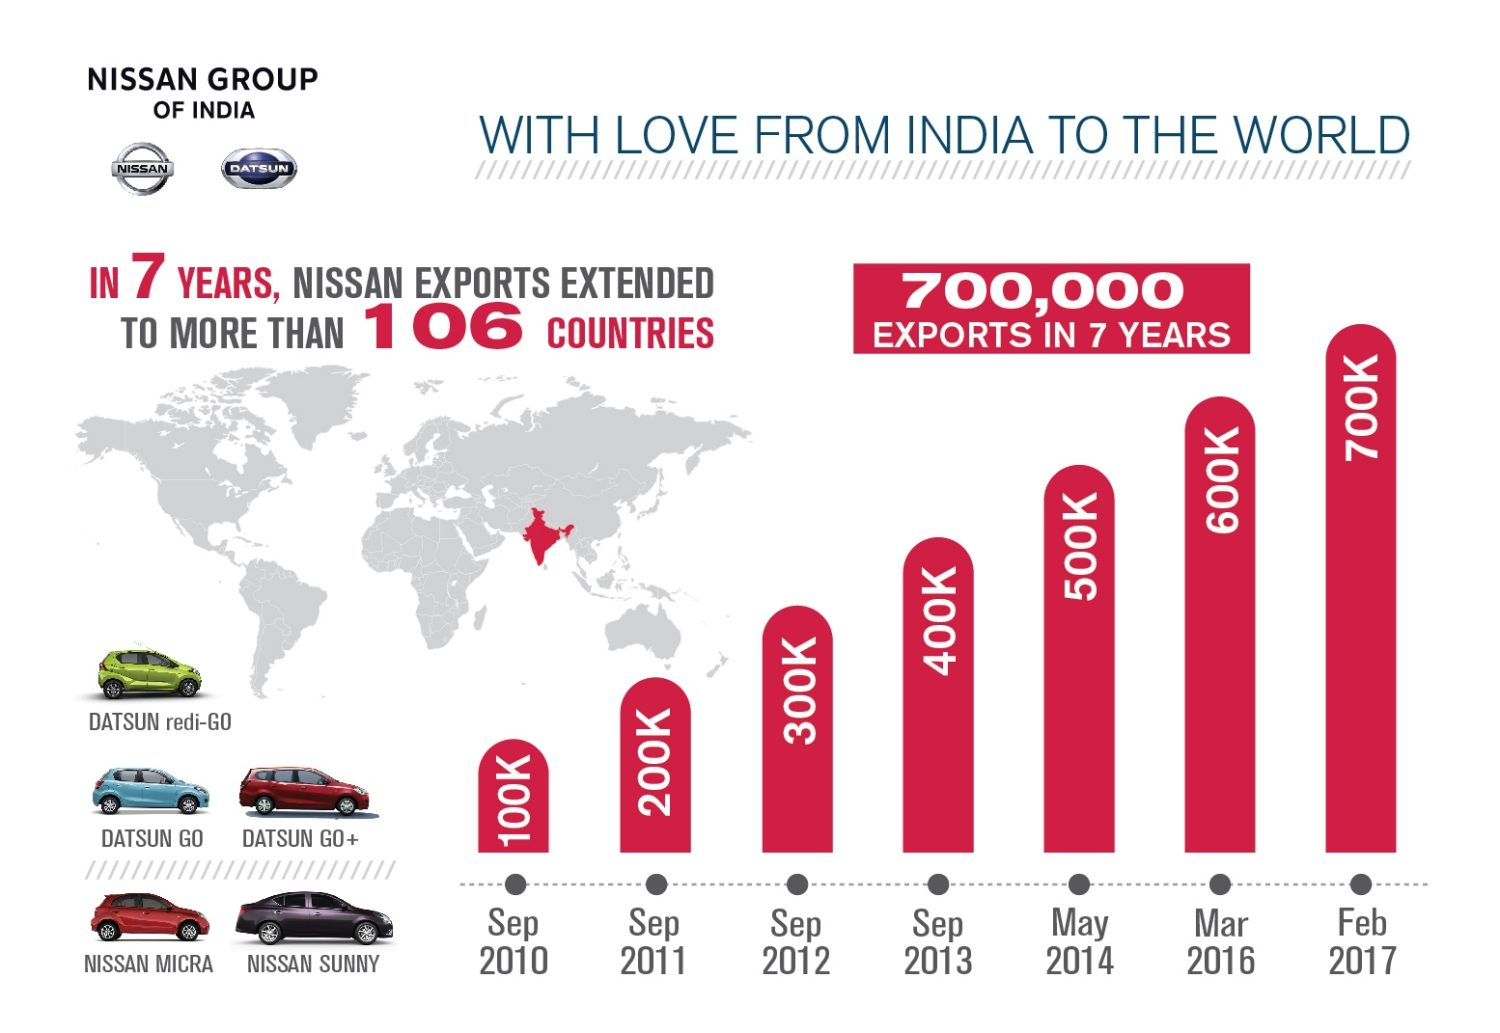 With Love from Nissan India to the World